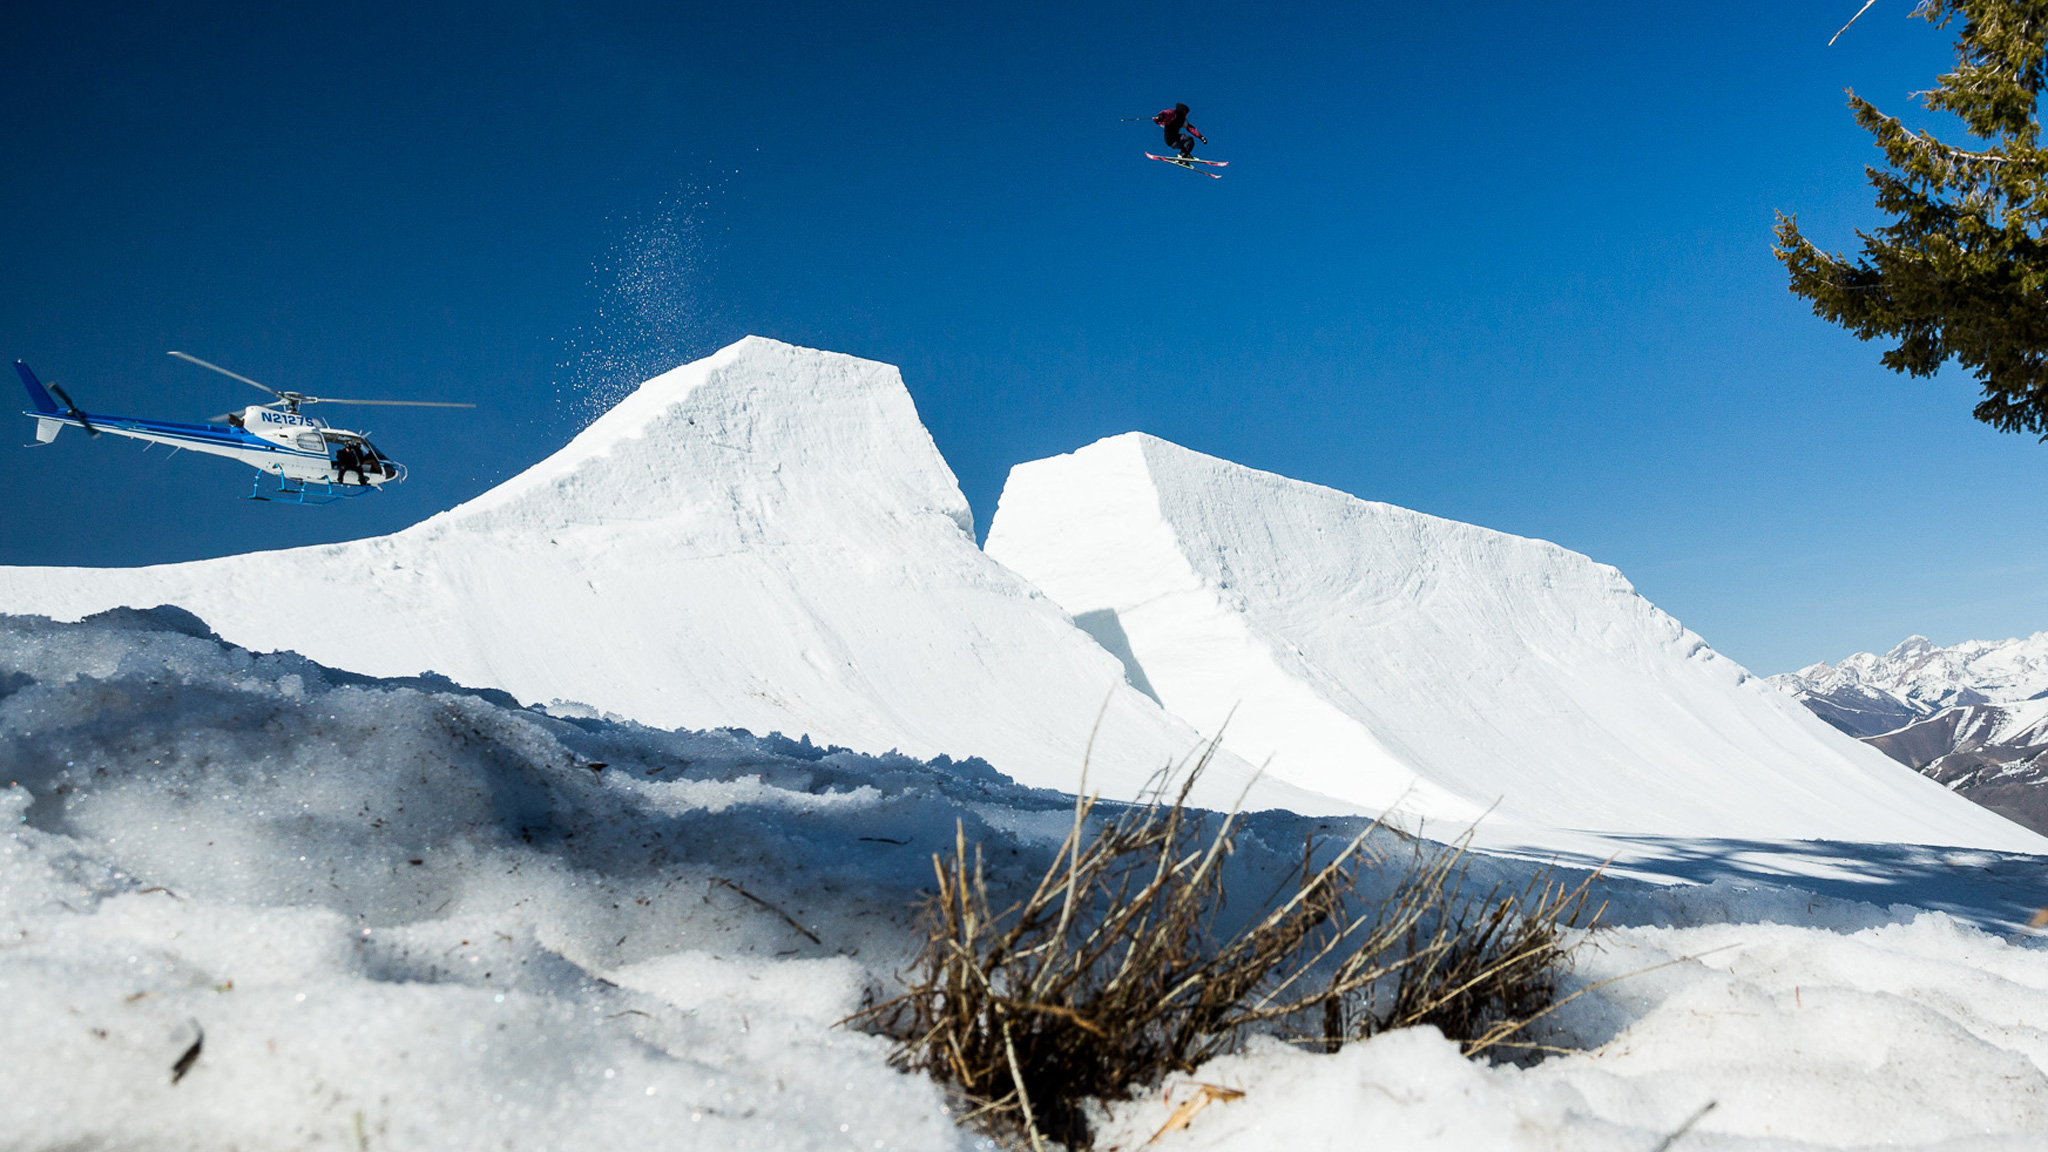 Lucas Stål Madison sends it over a hip jump at Sun Valley, Idaho, while filming with Level 1.